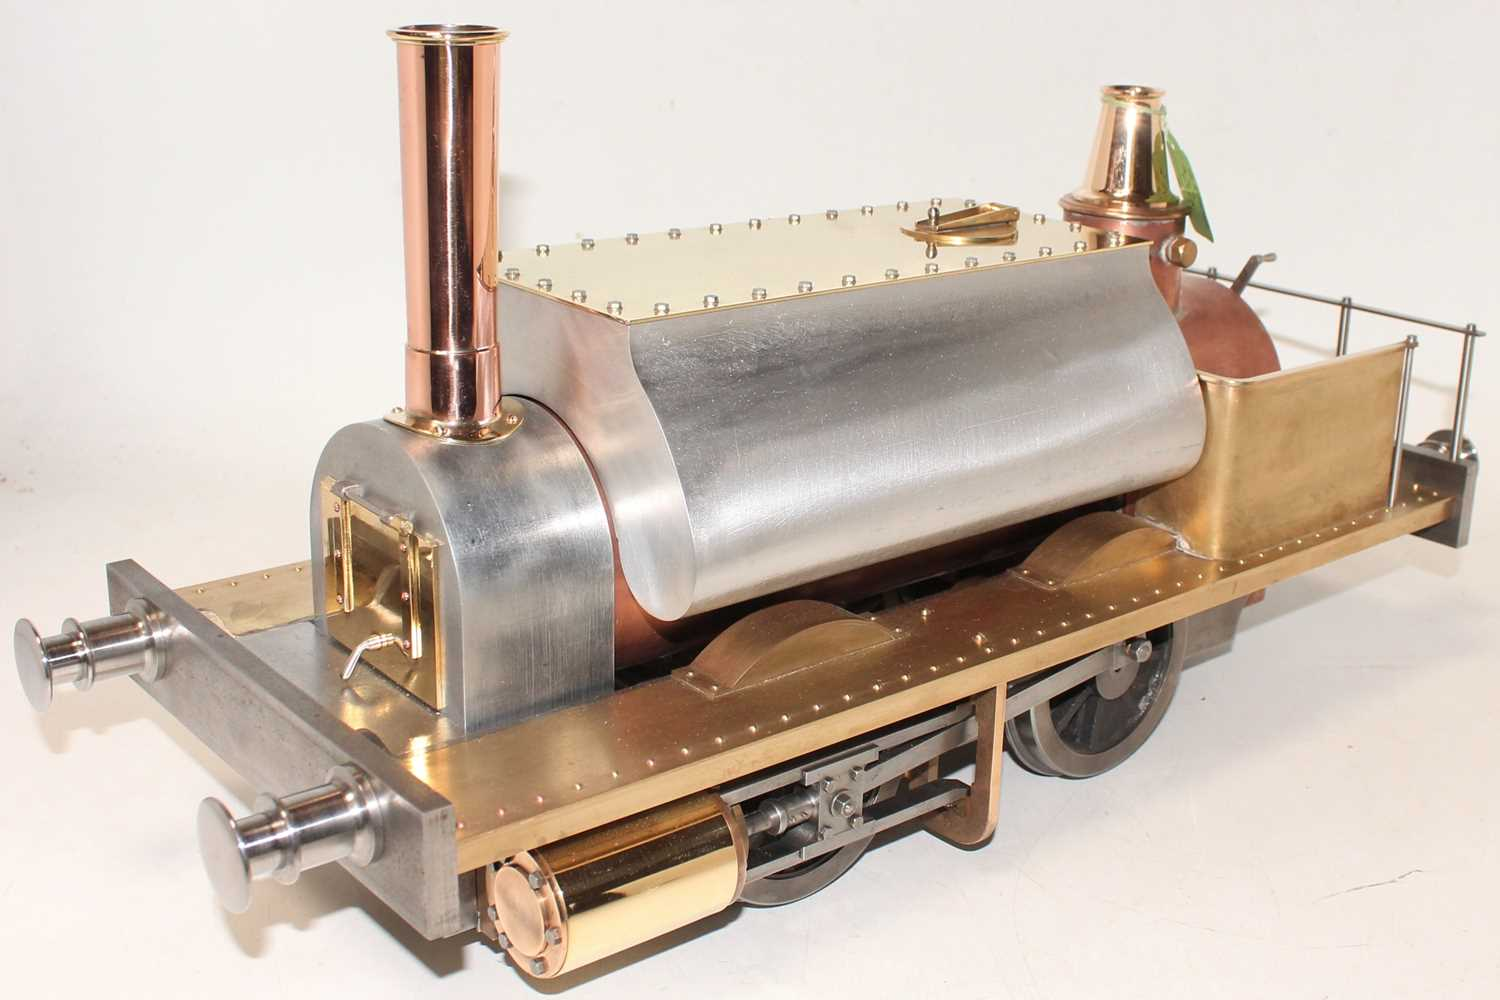 A very well engineered Reeves Castings 5 inch gauge model of a Gemma 0-4-0 Tank Locomotive, built to